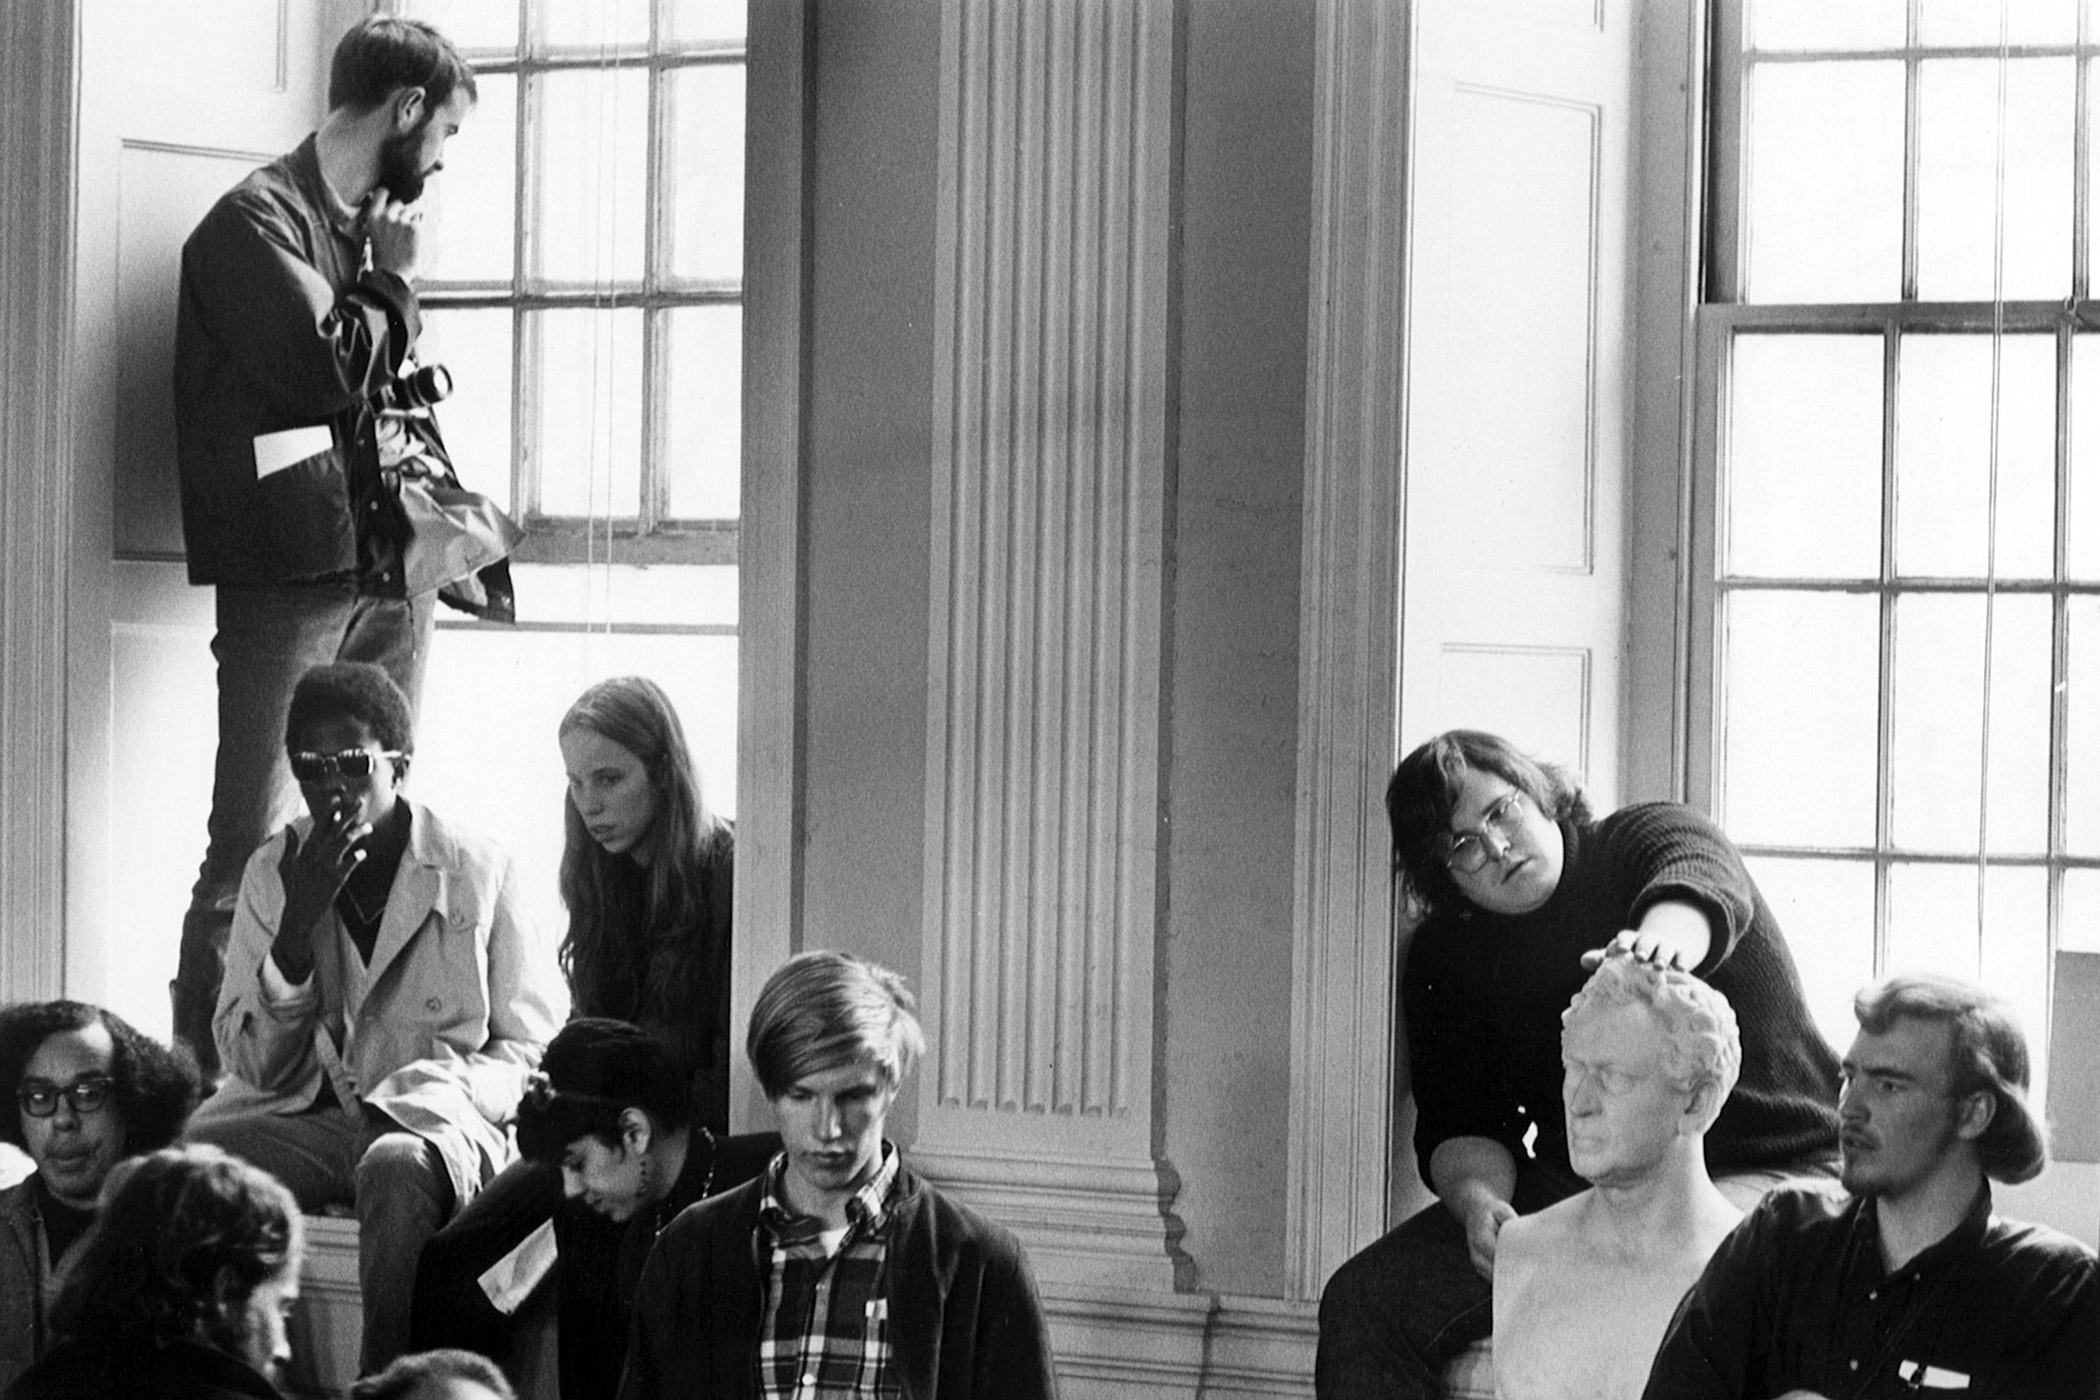 Students occupy Harvard's University Hall during a demonstration on April 9, 1969. As part of the takeover, students removed all Harvard administrators from the building. A massive police raid wrested the protesters from the building, leading to over 300 arrests. The conflicts ultimately led to changes including the establishment of an Afro-American Studies department.